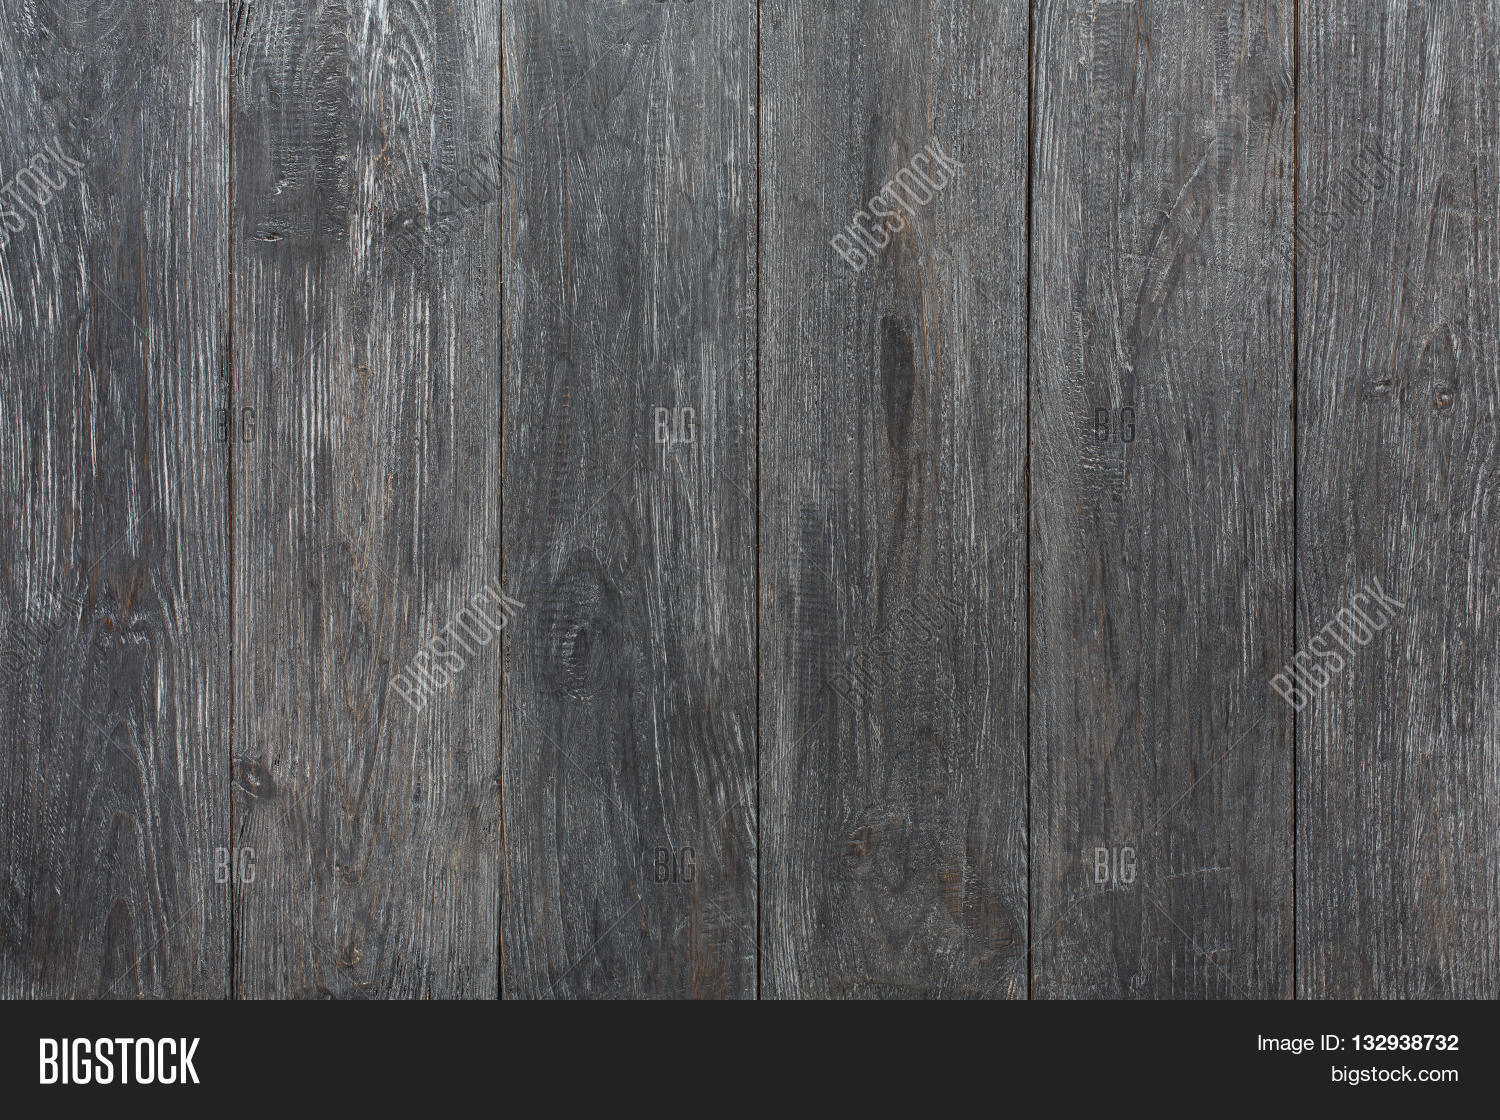 Grey Wood Texture And Background Blue Rustic Old Wooden